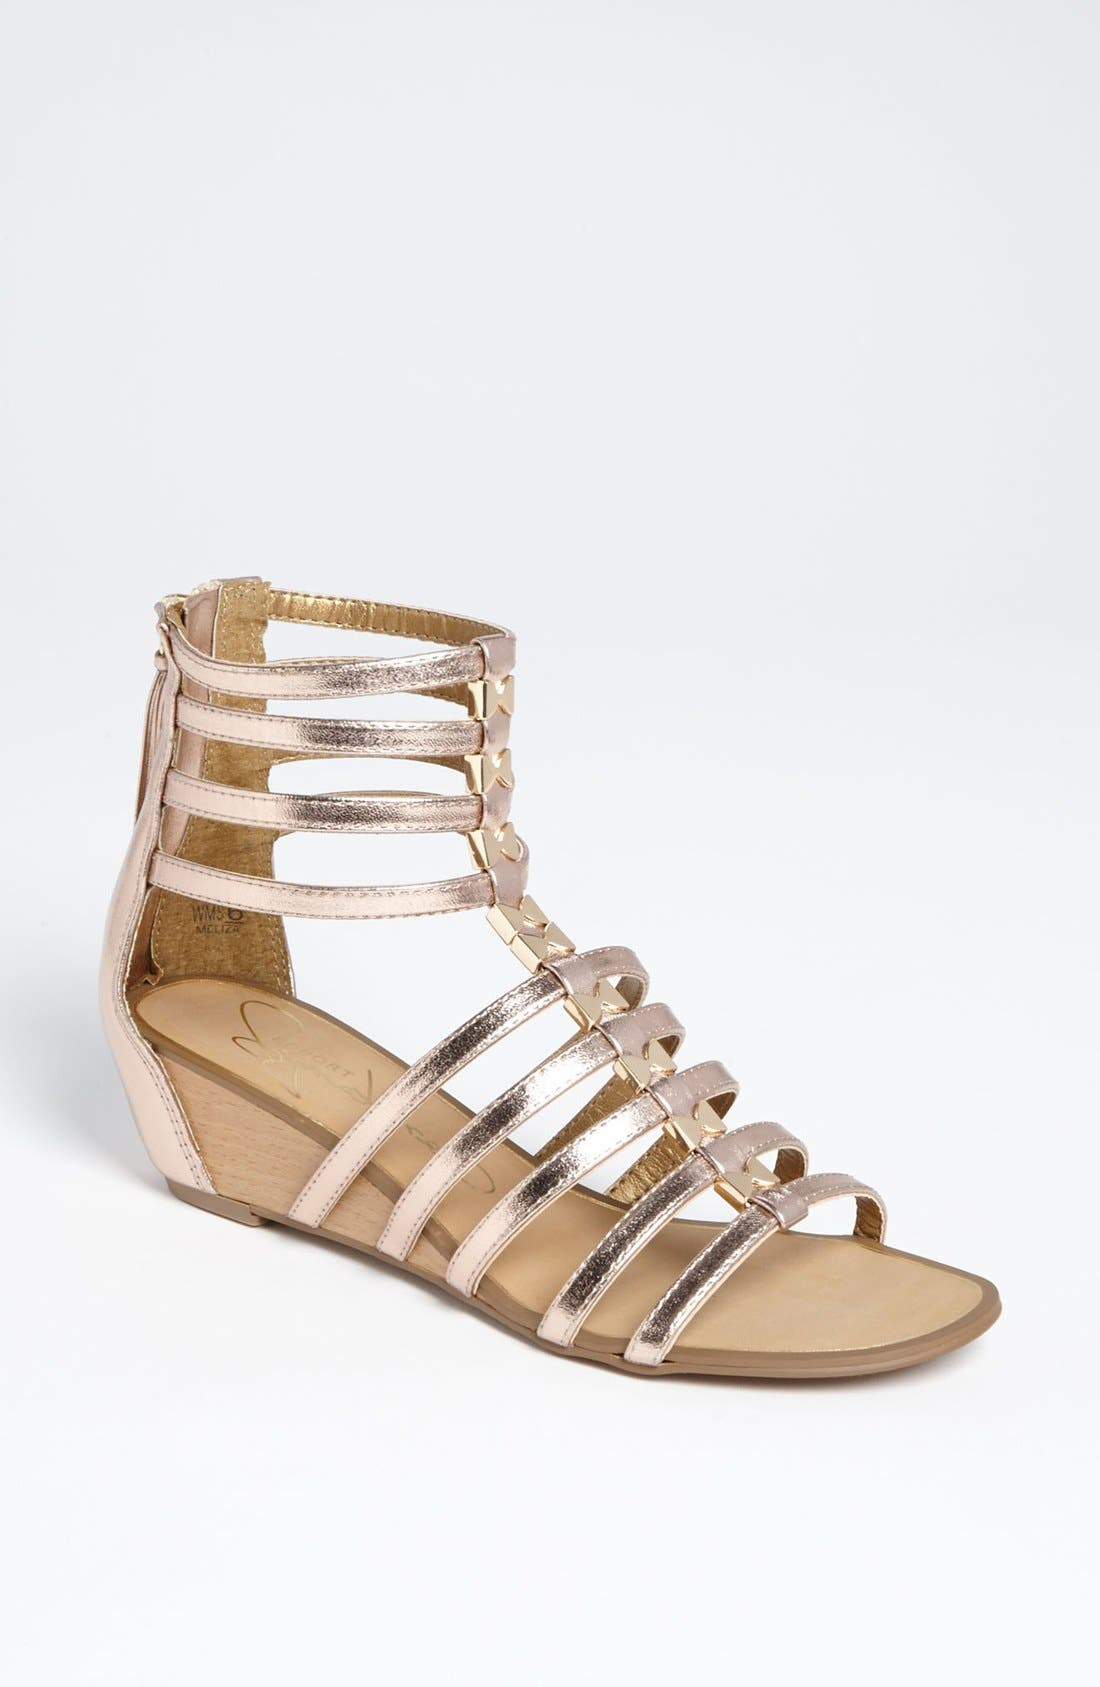 Alternate Image 1 Selected - REPORT Signature 'Meliza' Sandal